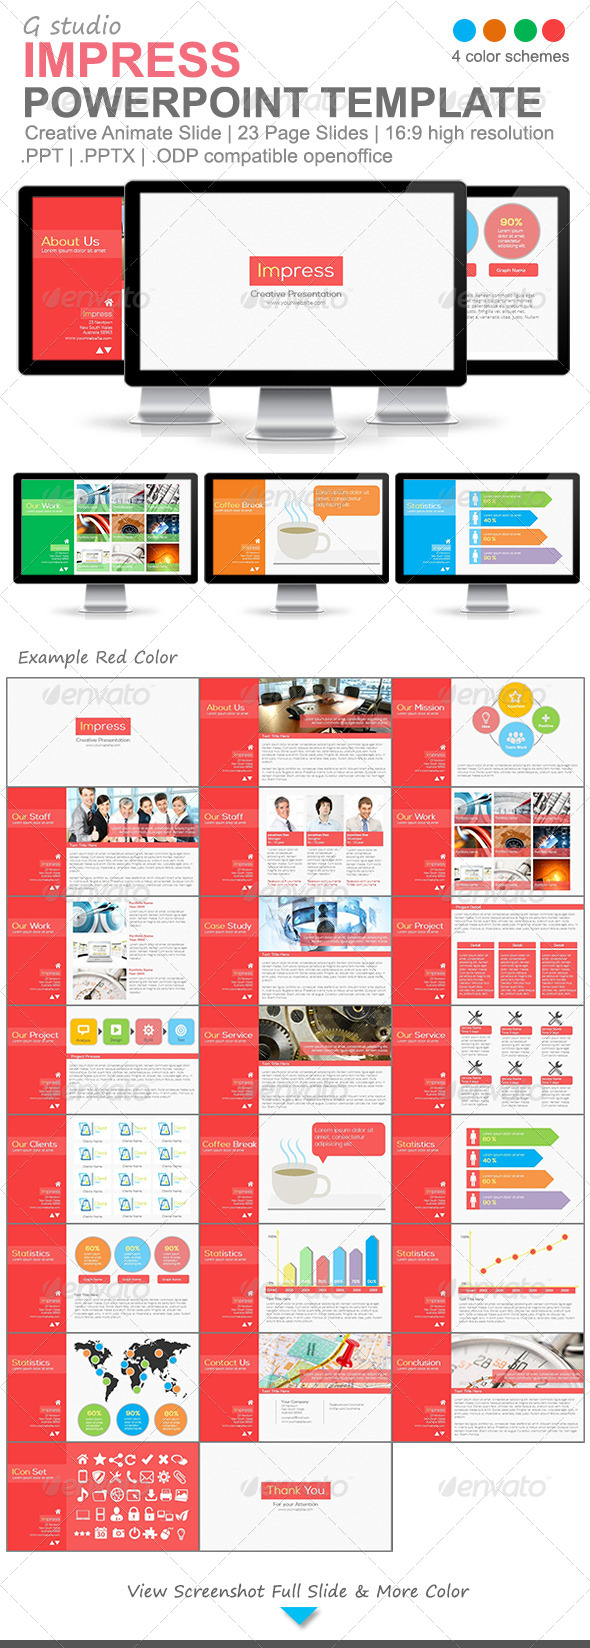 GraphicRiver Gstudio Impress Powerpoint Template 4918705